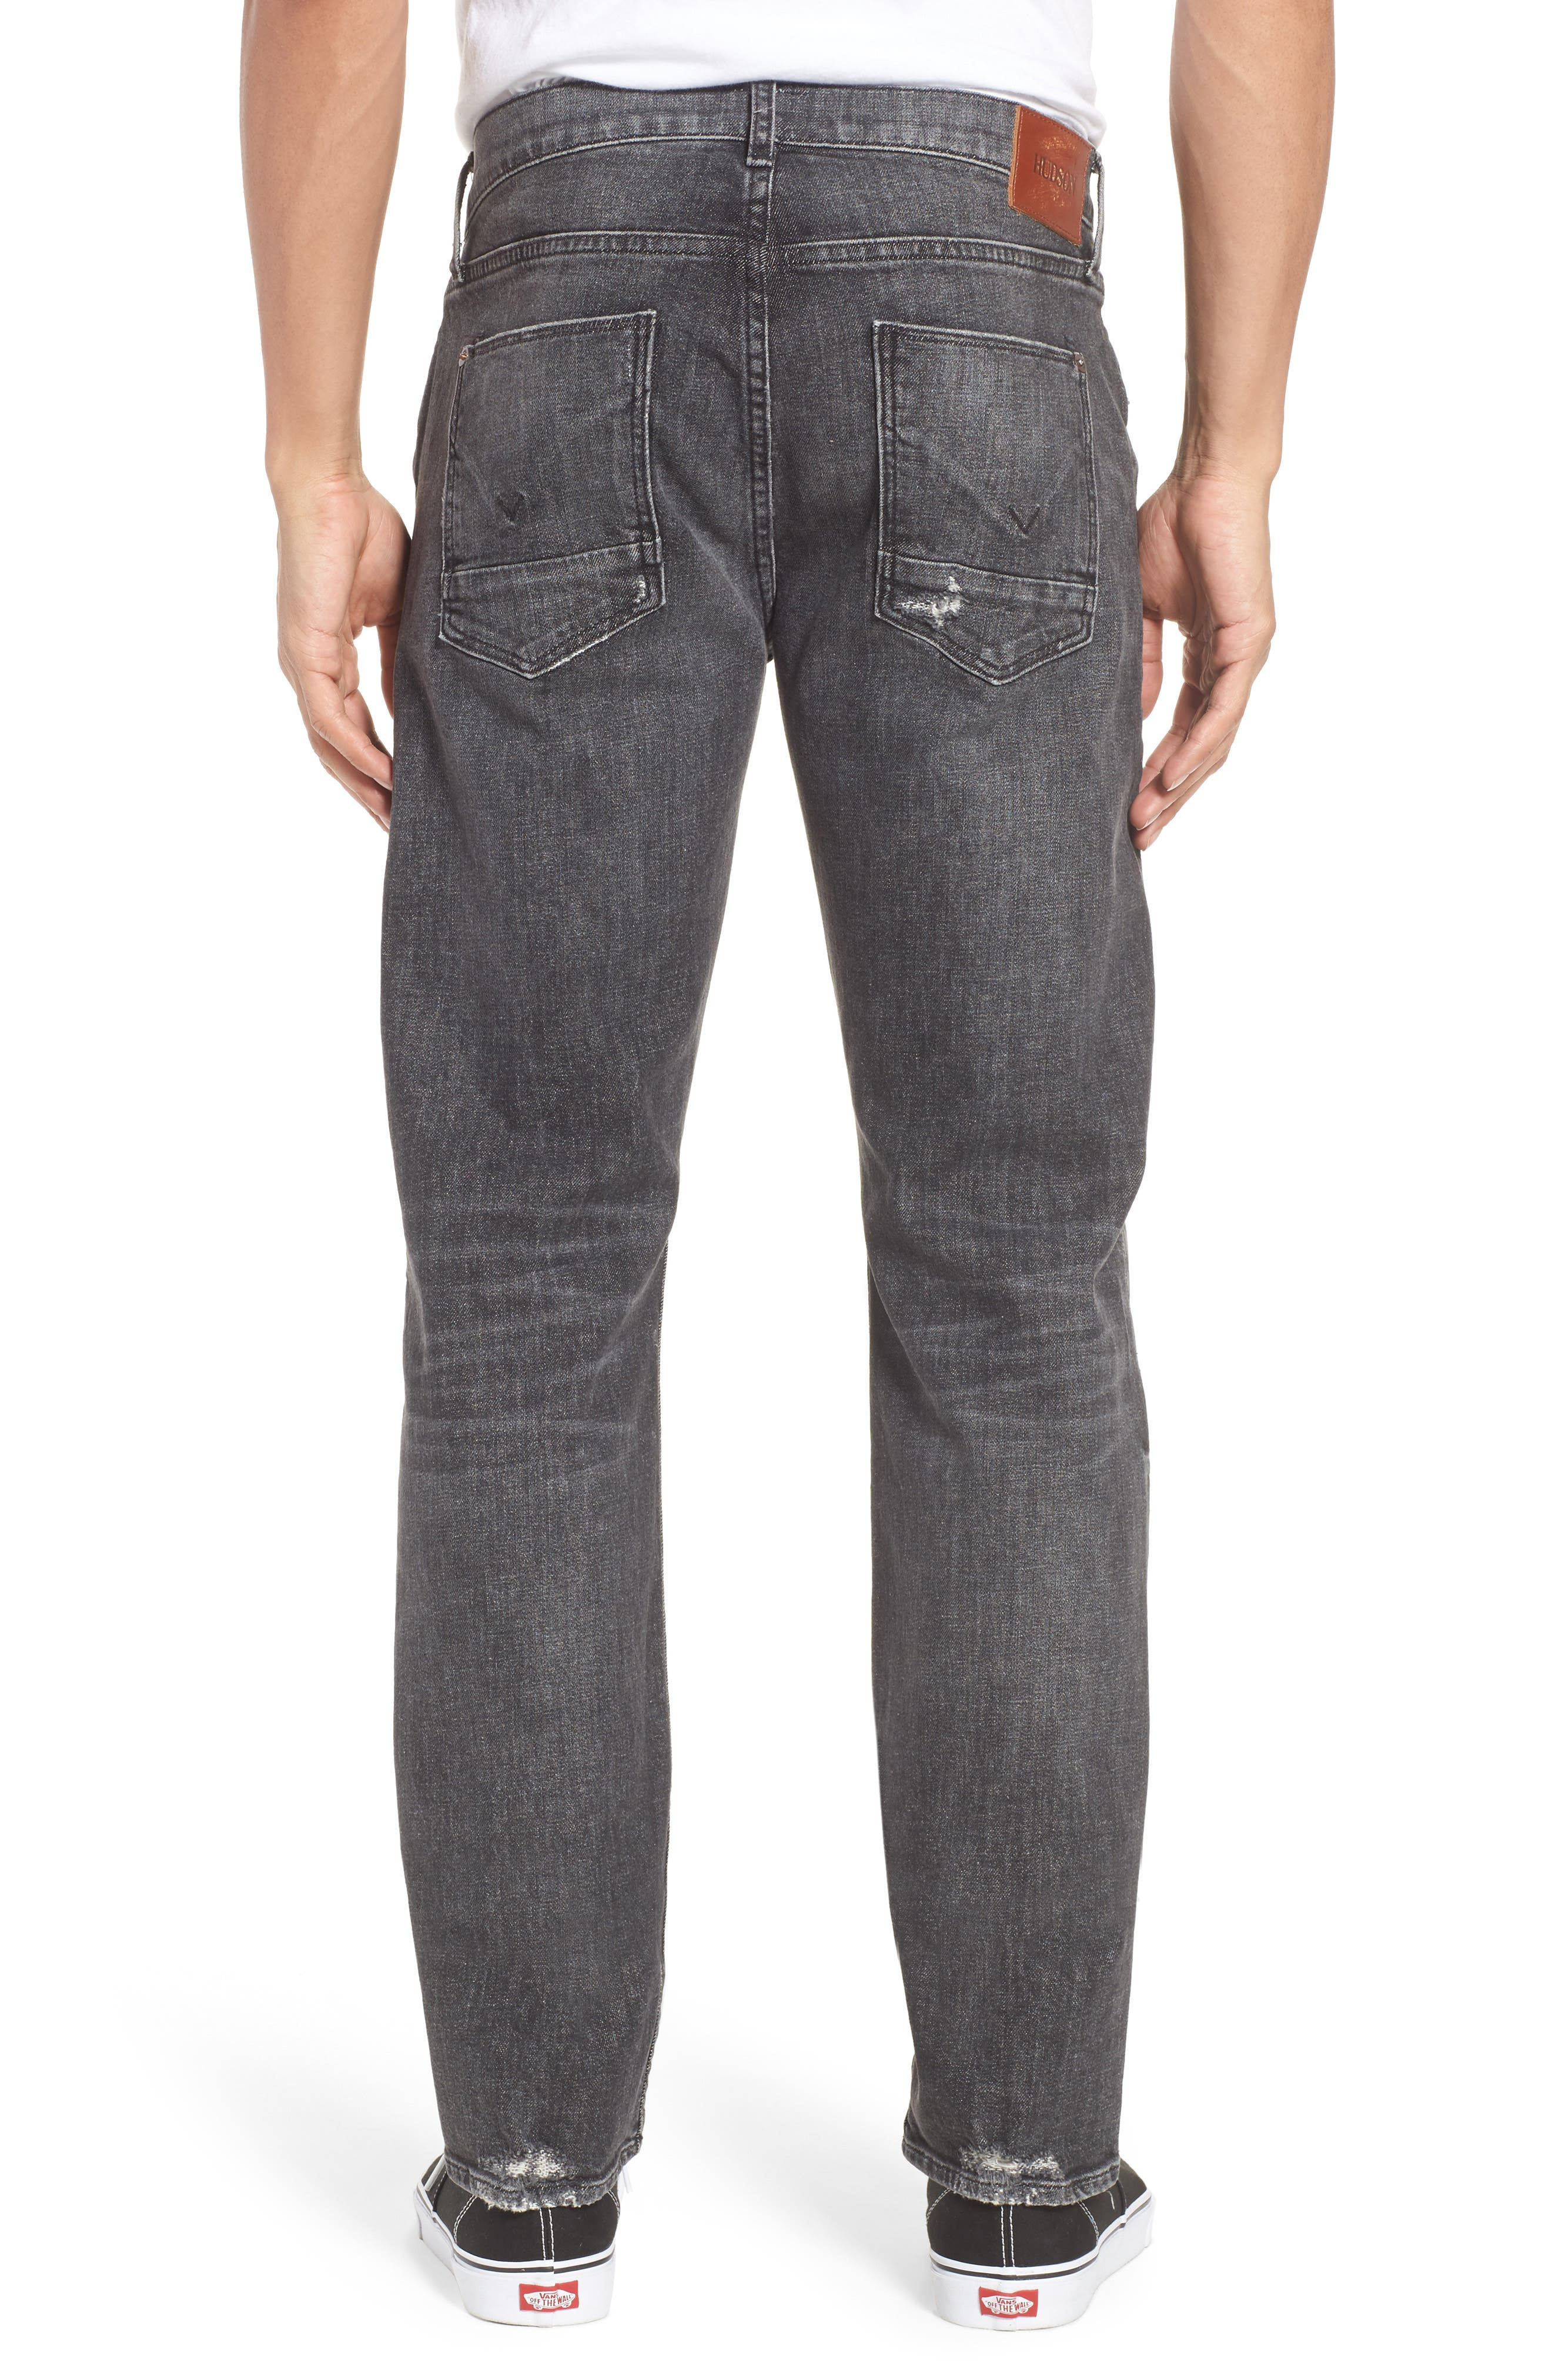 Blake Slim Fit Jeans,                             Alternate thumbnail 2, color,                             400